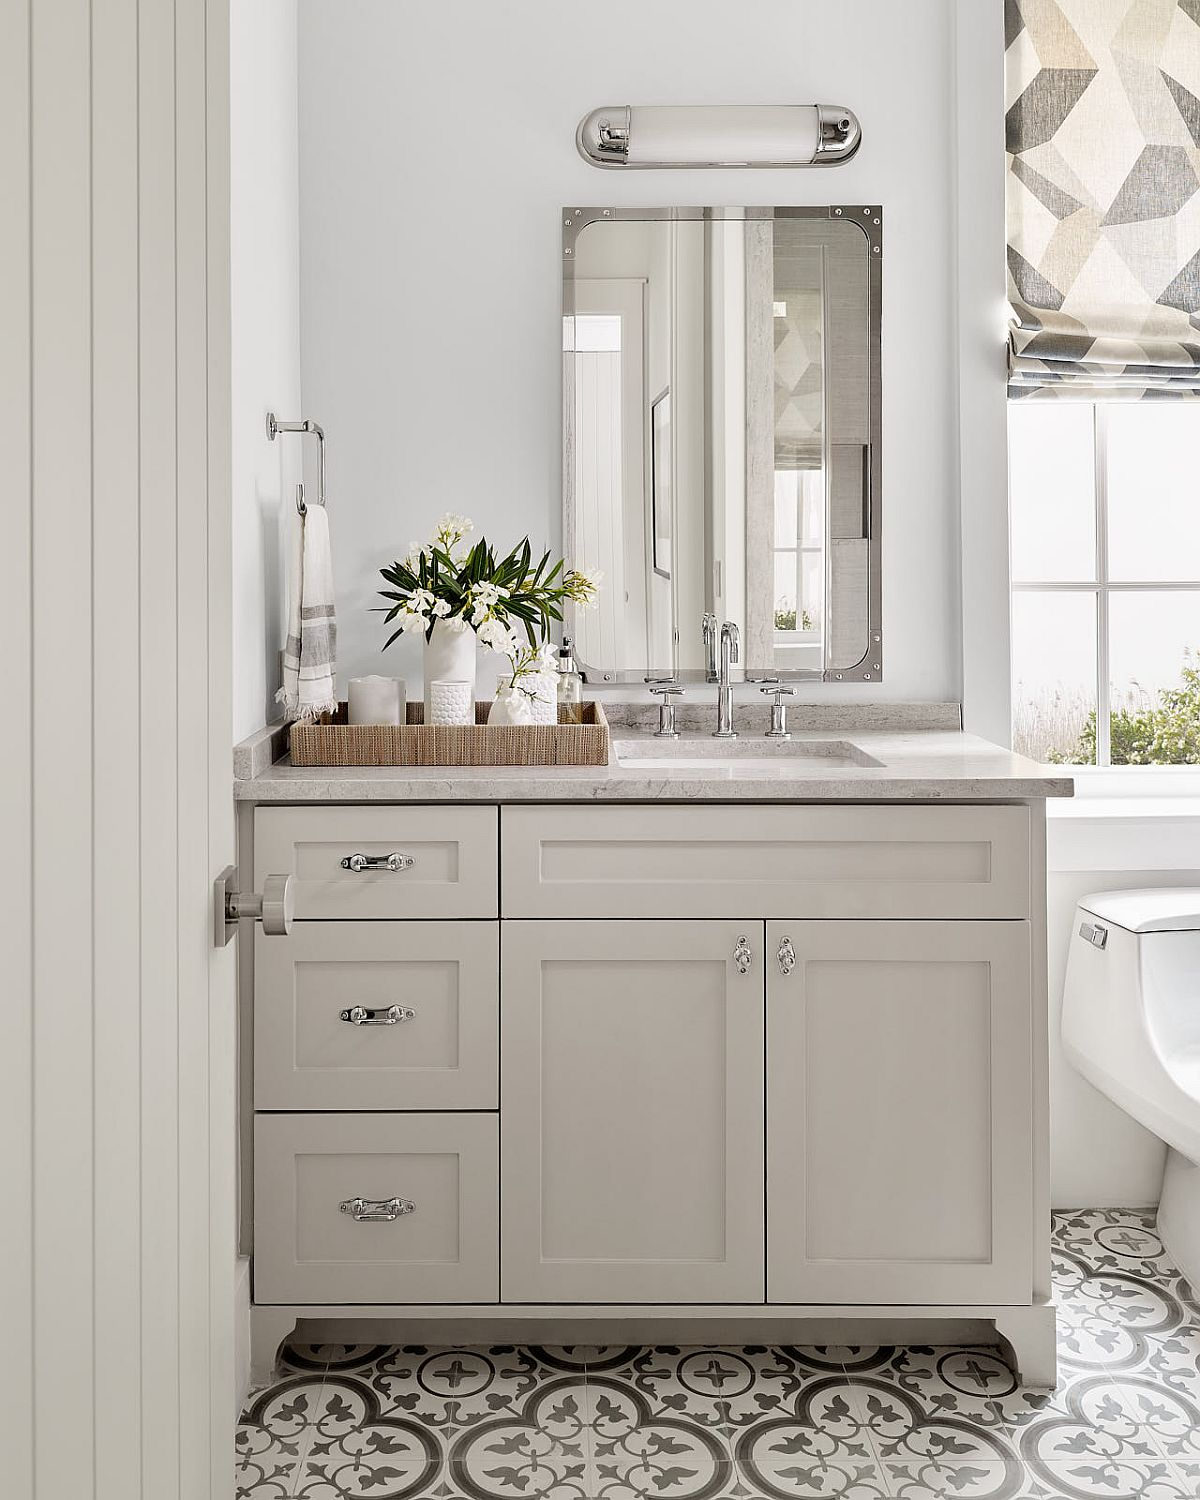 Tiles-add-pattern-to-the-beach-style-bathroom-without-altering-its-color-scheme-75998